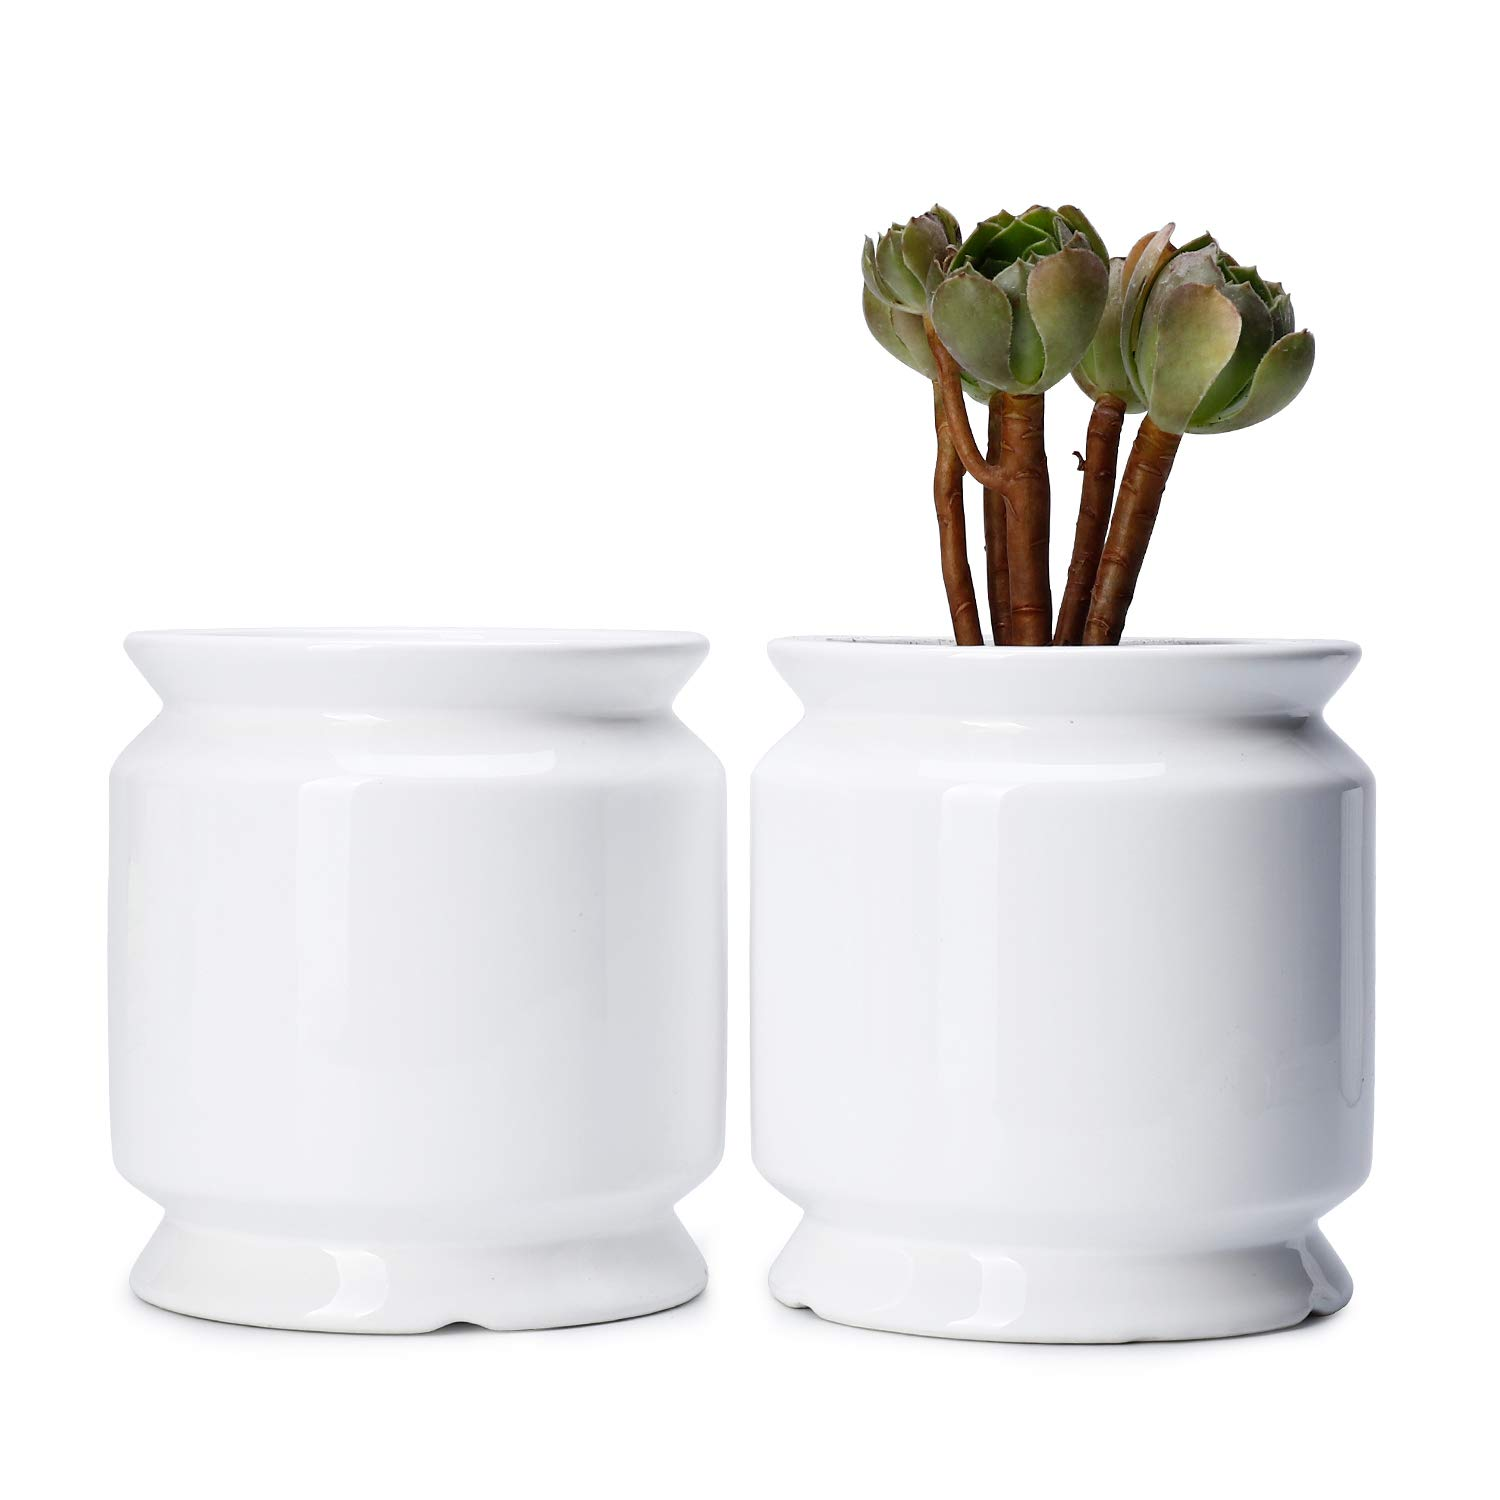 Potey Ceramic Plant Flower Pots Planters – 3.6 with Drain Hold Tall Medium Pots Cylinder Container – Minimalis Decor Indoor Plants – Set of 2, Pure White, Mode 3